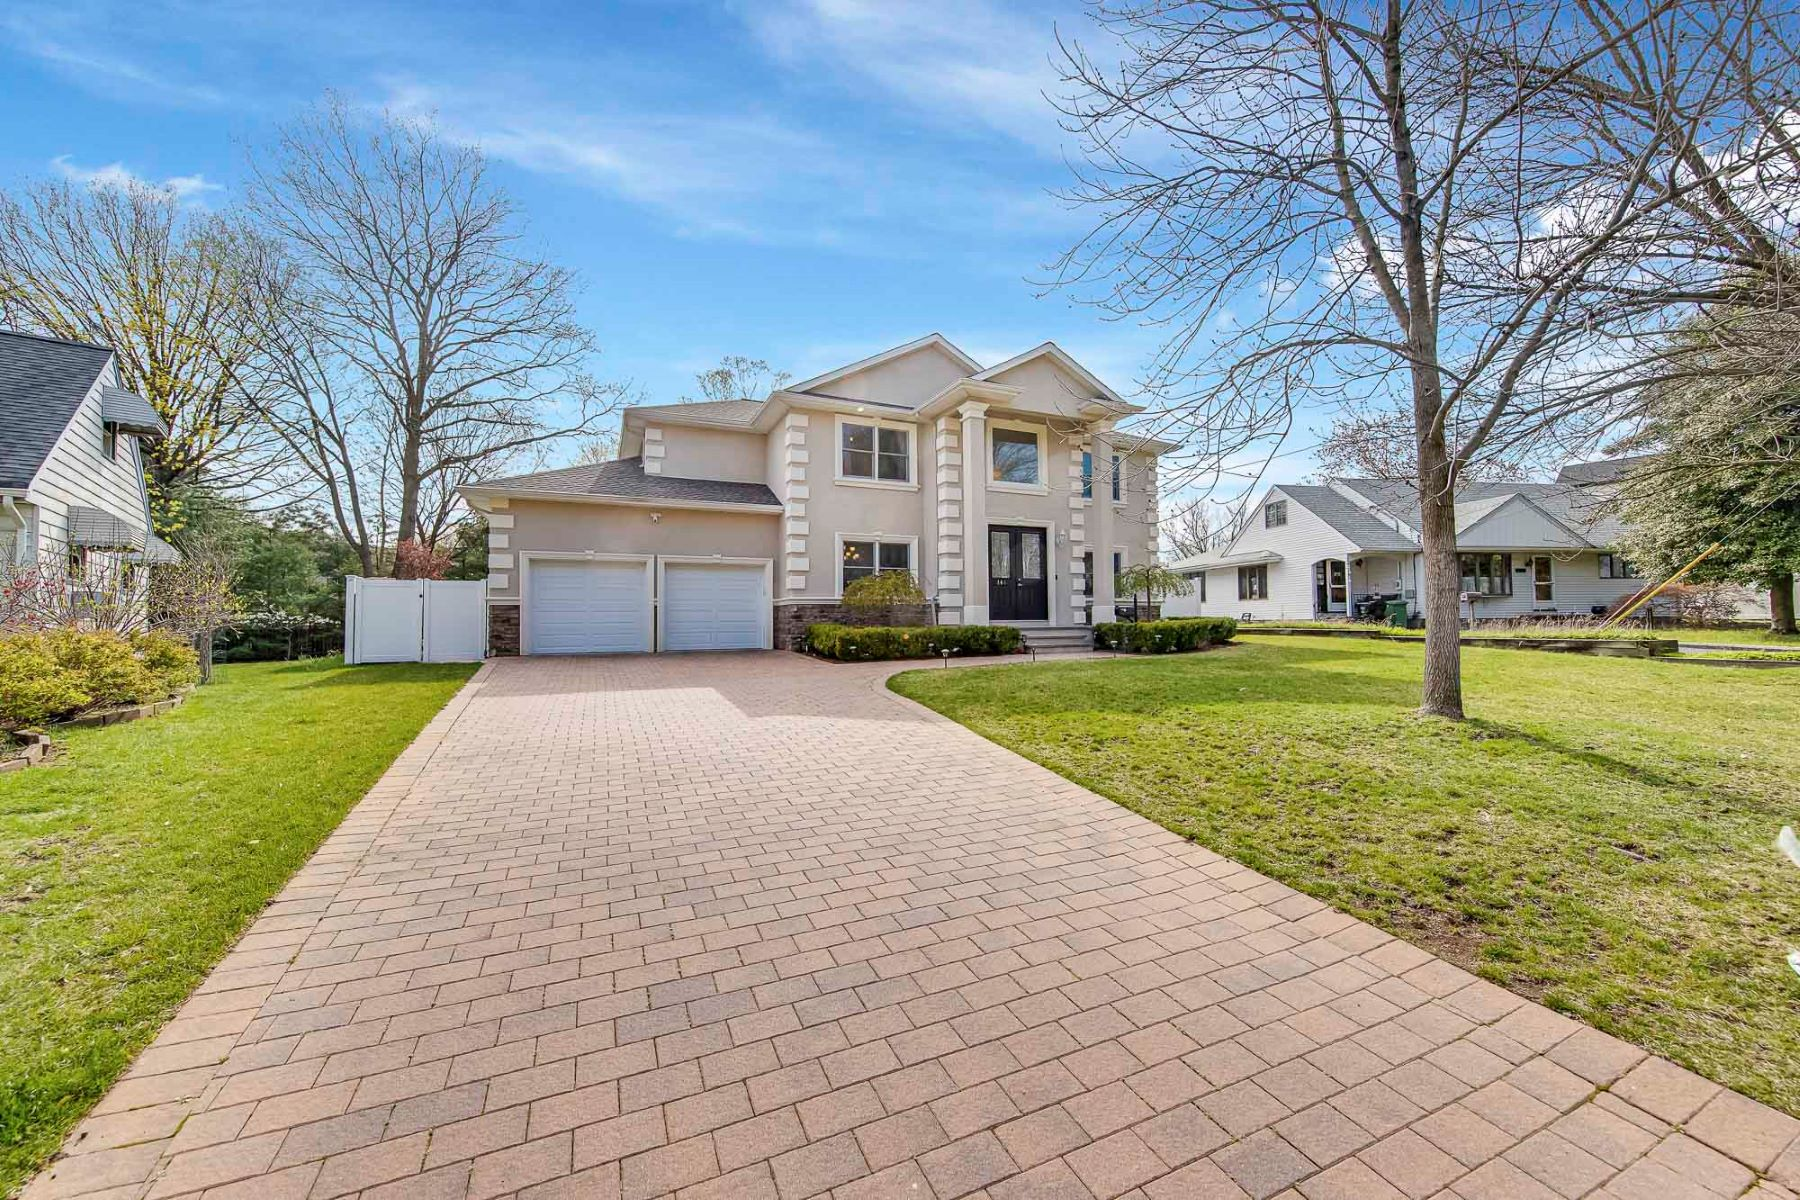 Single Family Homes for Active at Location! Location! 146 Garden Ave Paramus, New Jersey 07652 United States